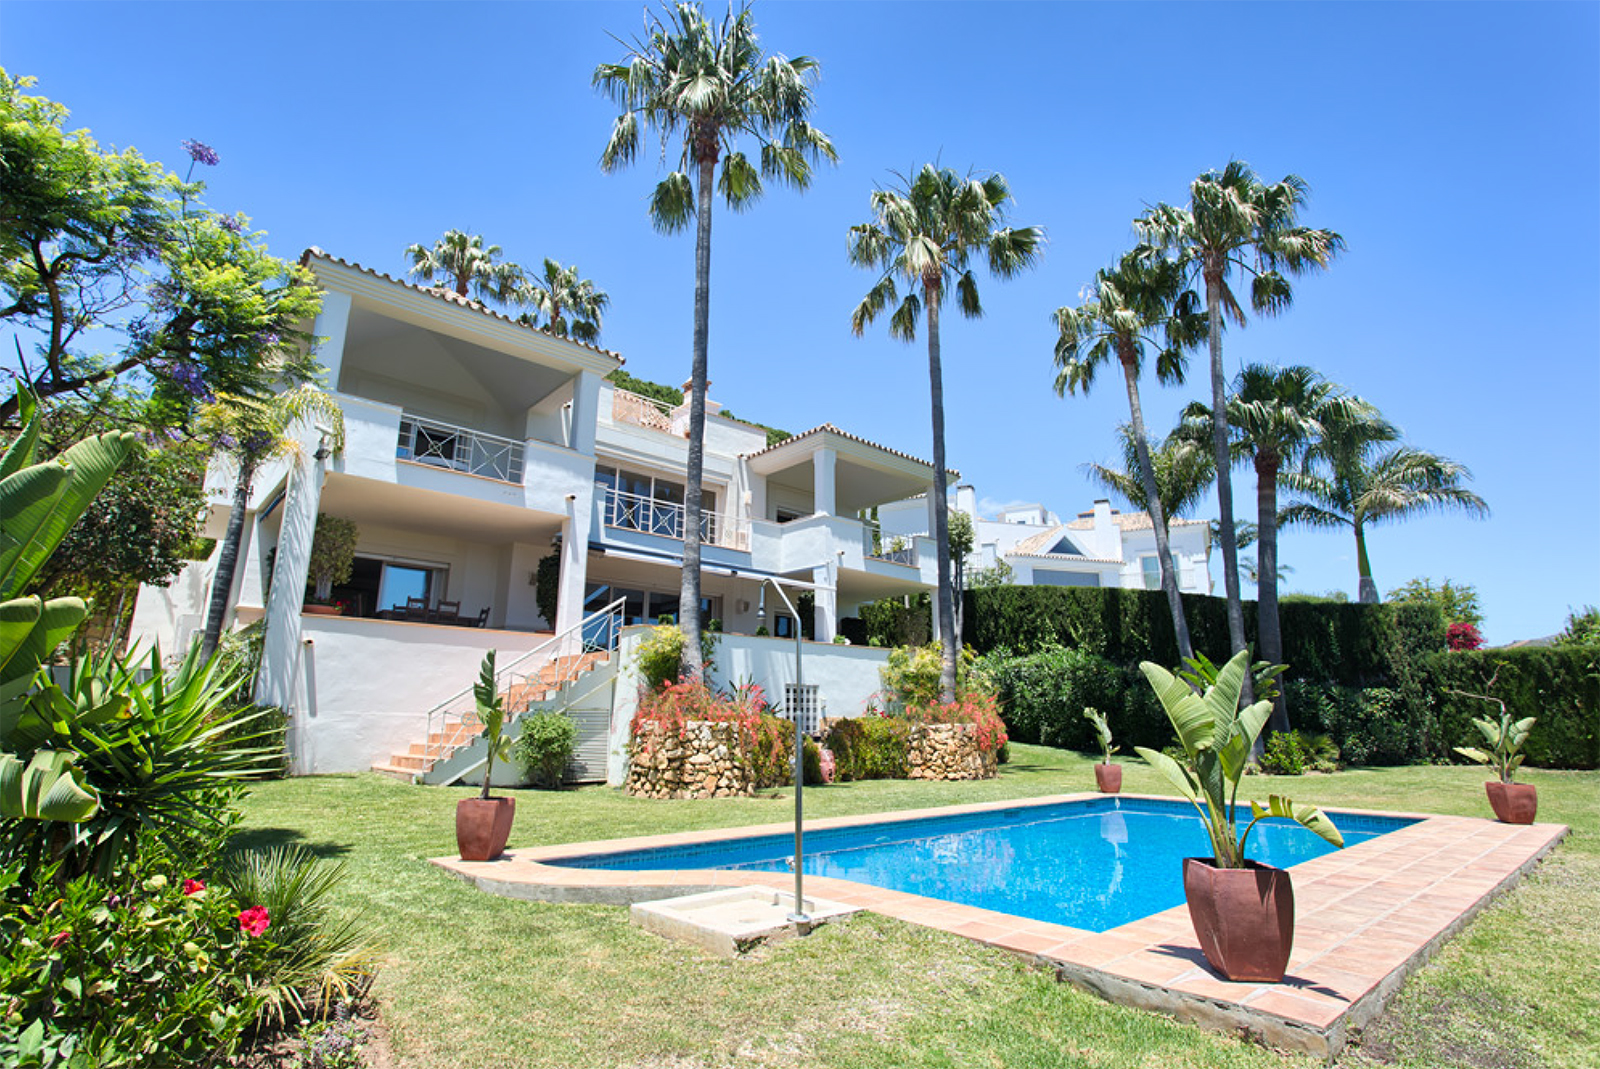 Magnificent Villa in Andalusian Style next to Río Real Golf Course with panoramic sea views